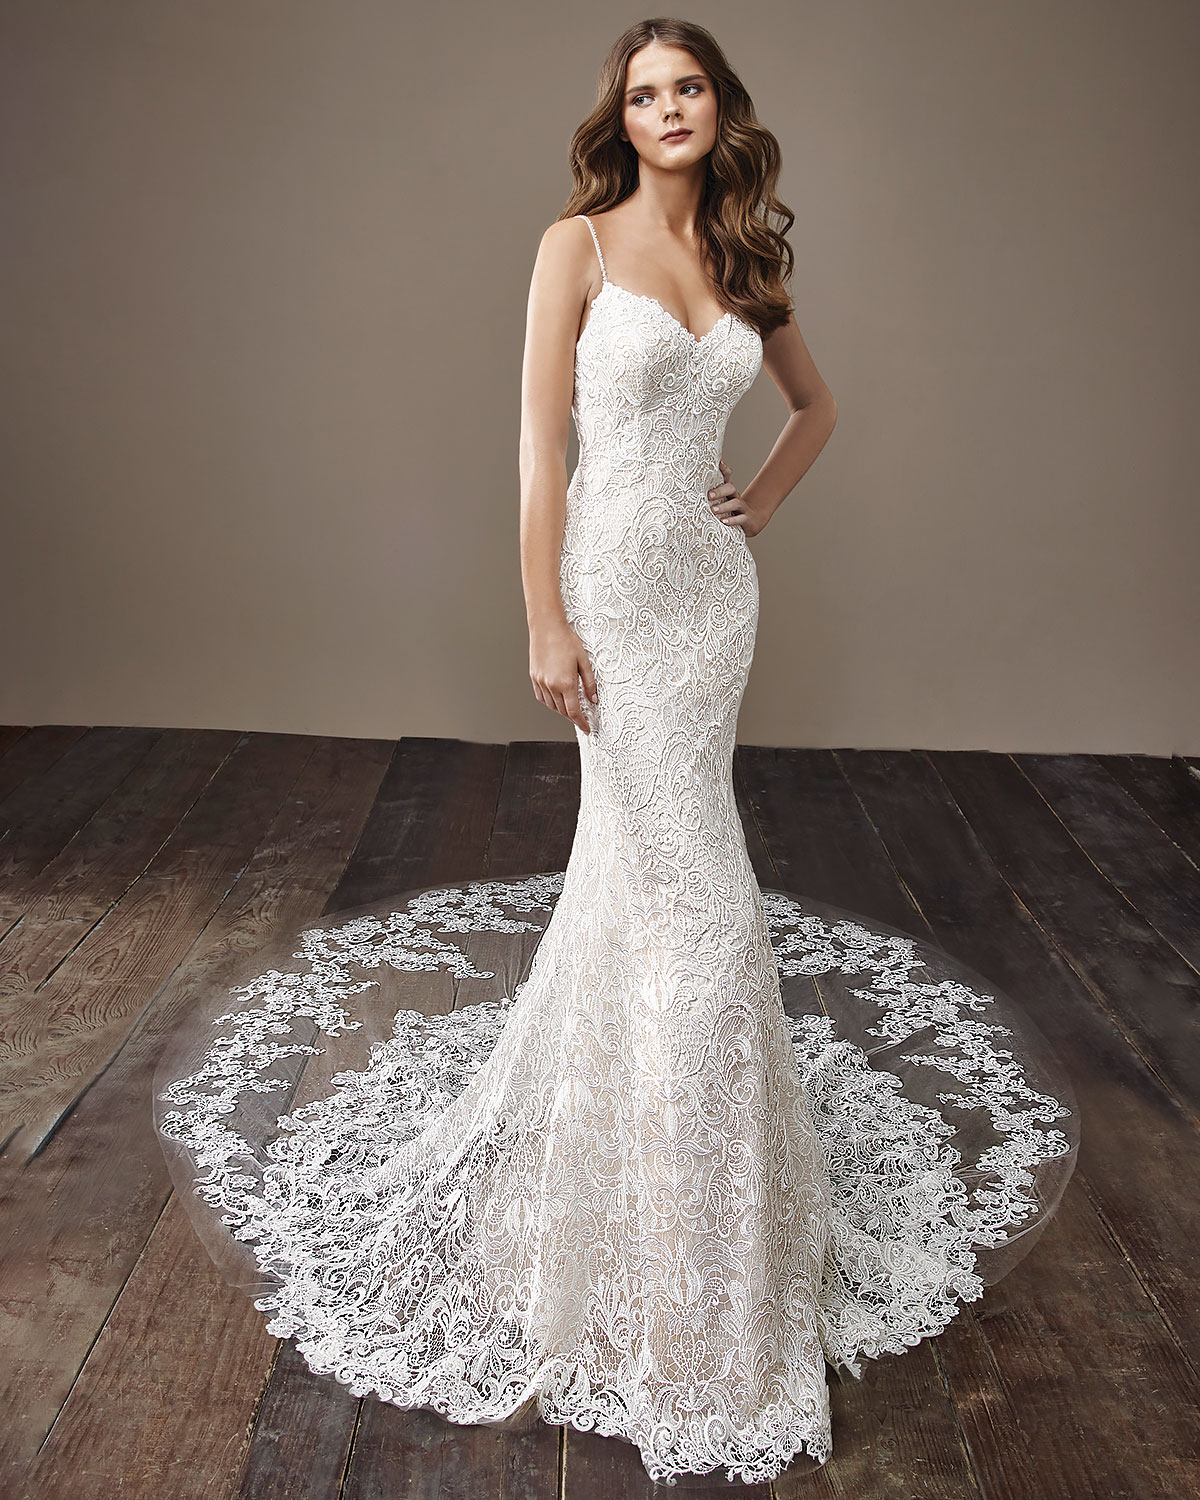 VOWS Bridal Outlet | Discounted Designer Gowns img12